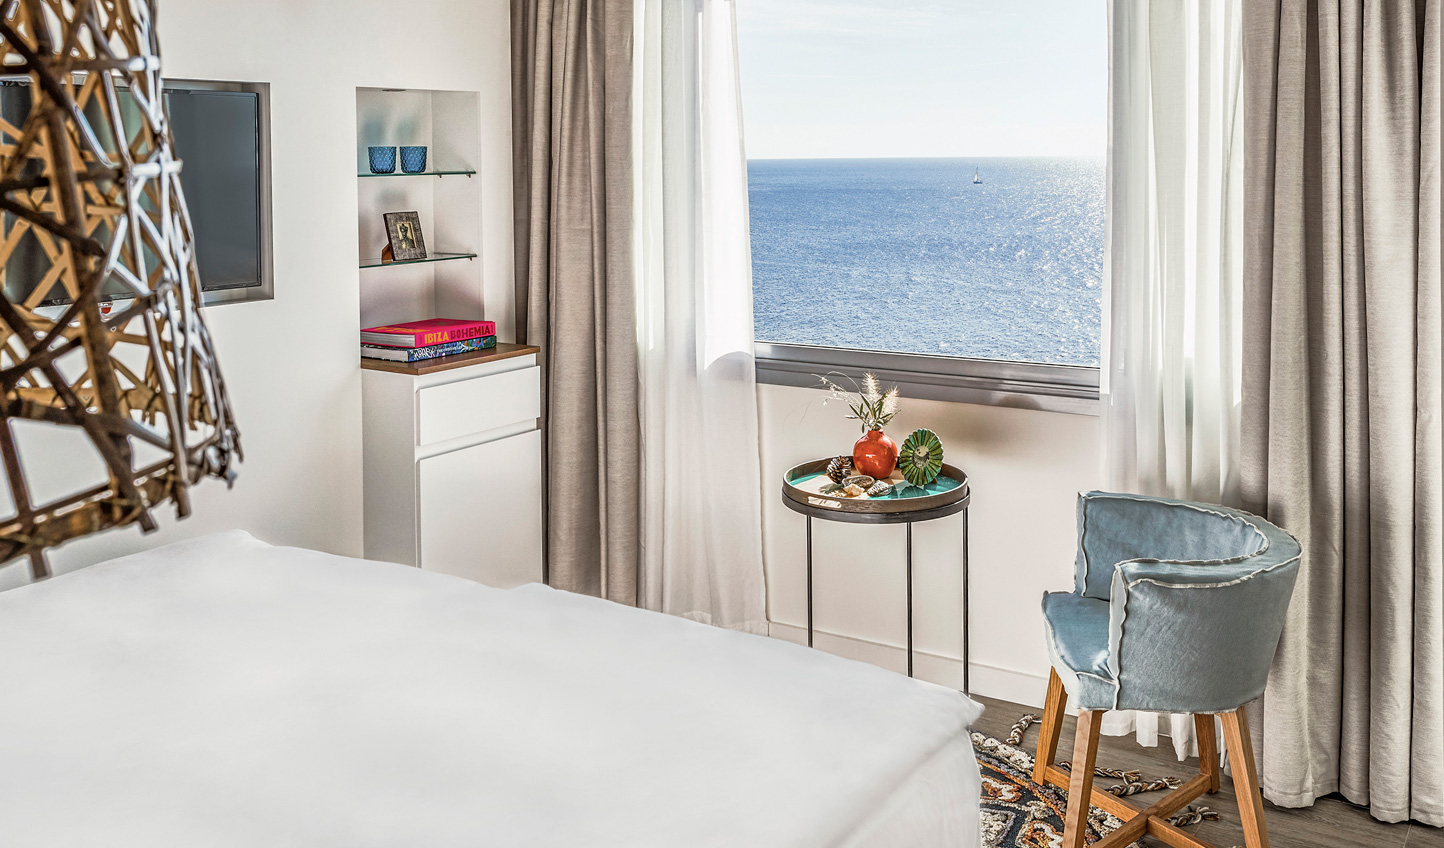 Wake up to views of endless blue